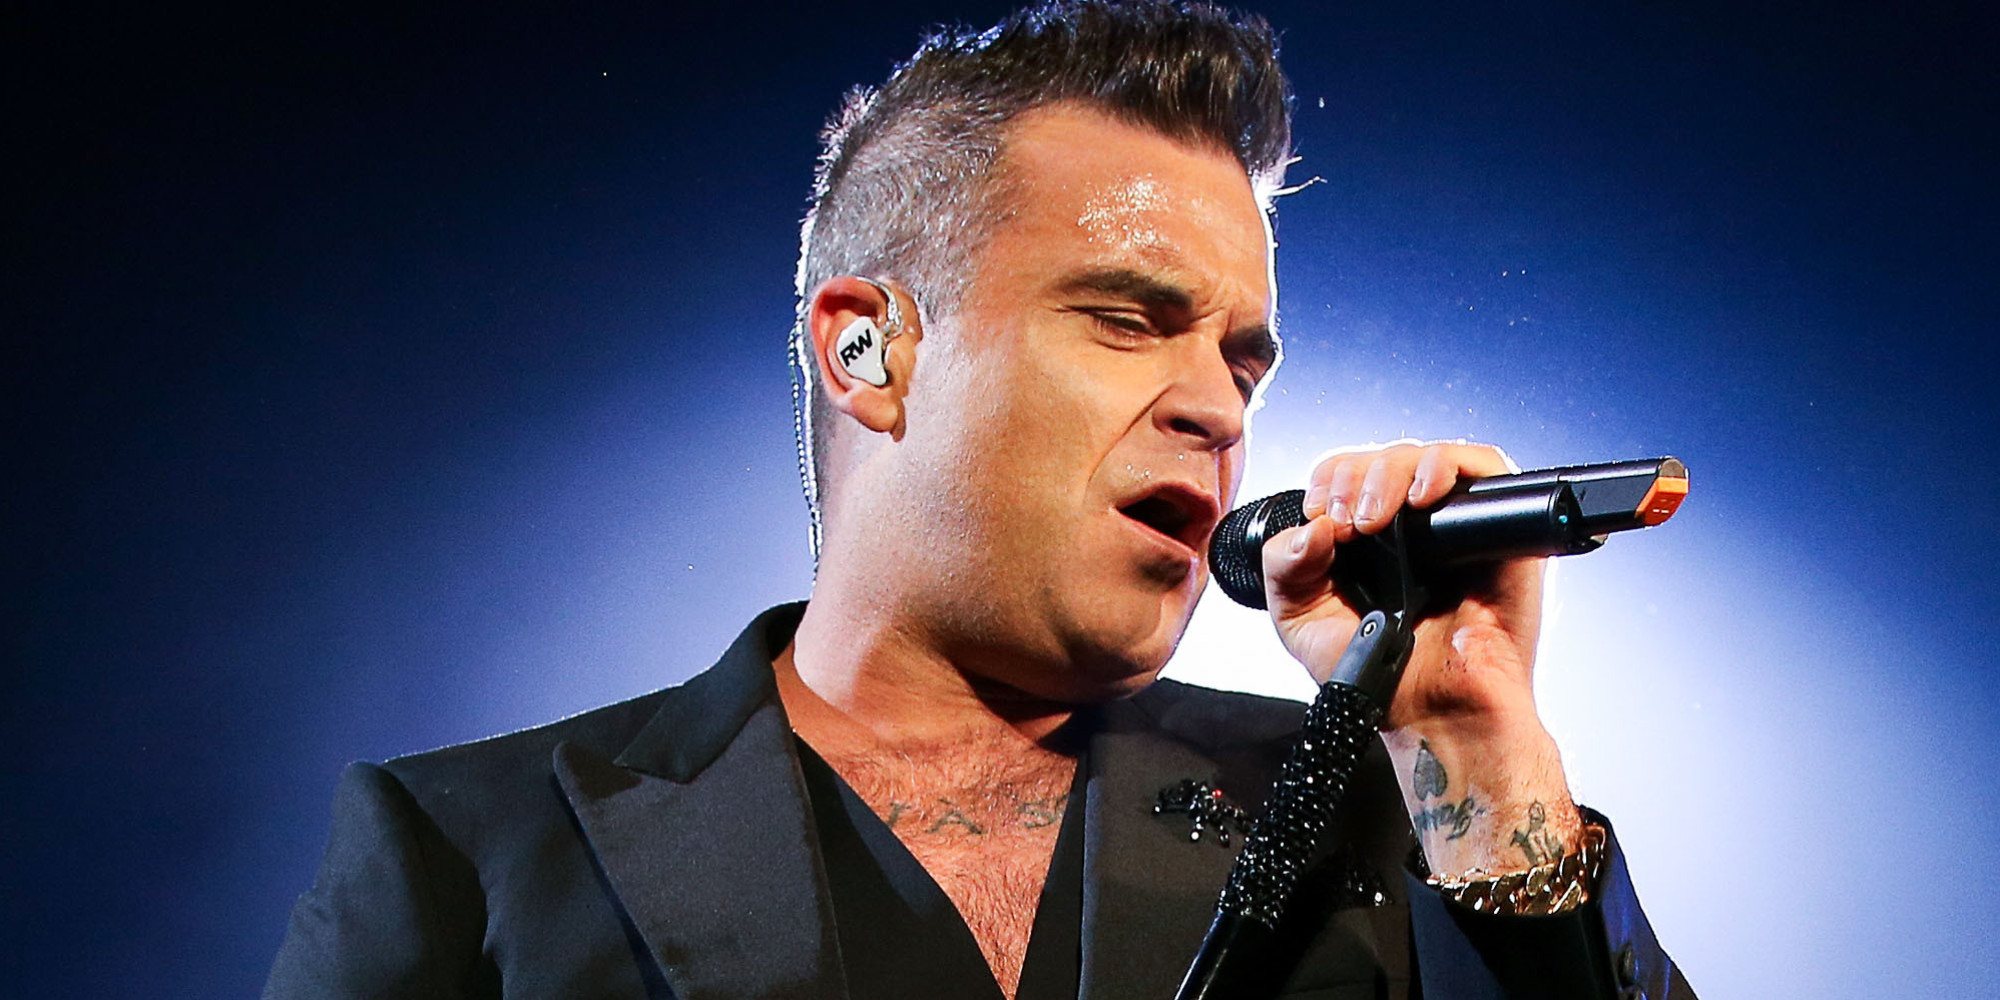 Robbie Williams soffre di un disturbo mentale